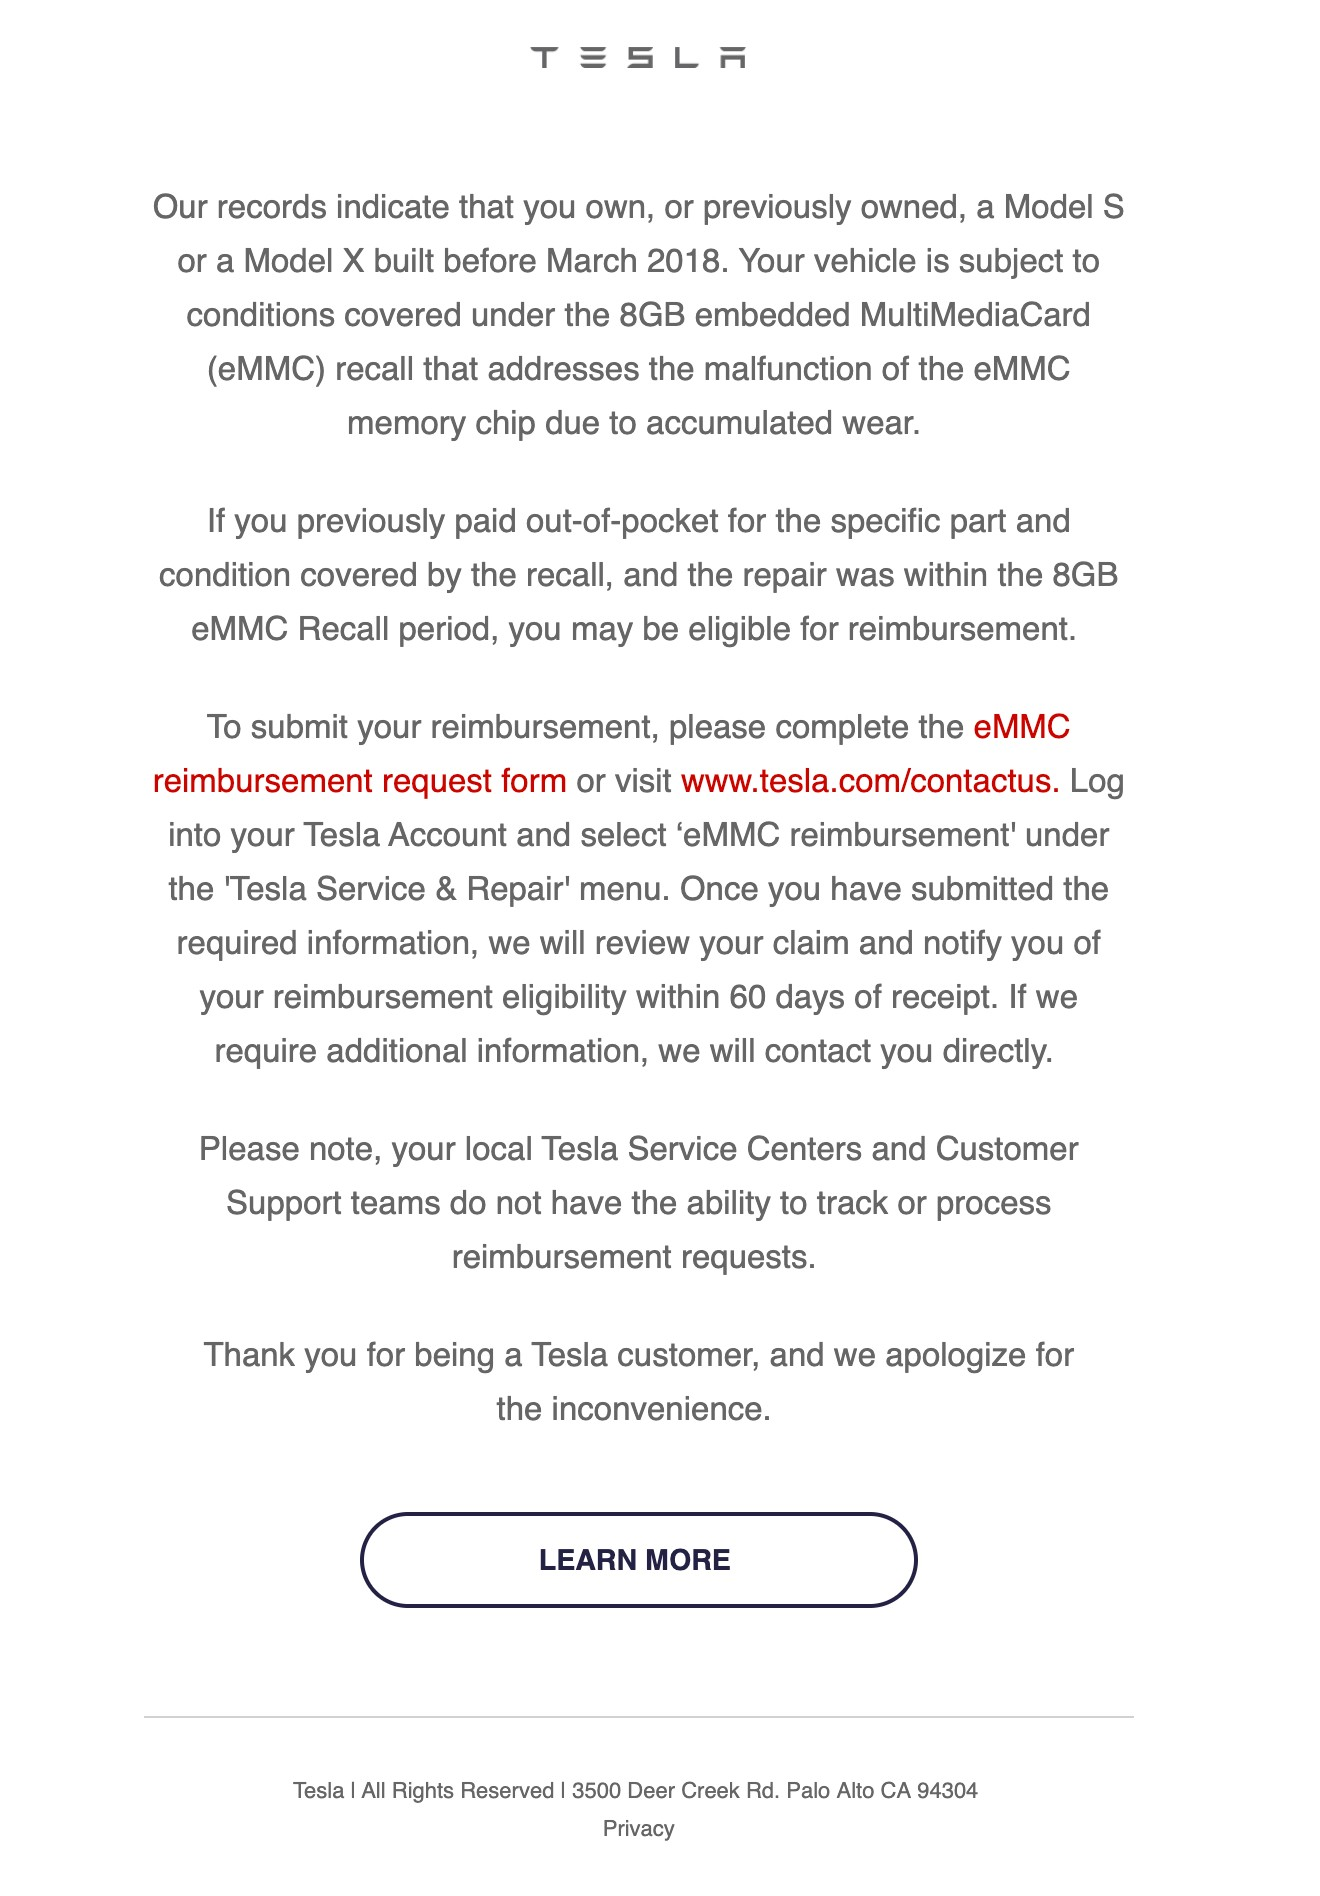 tesla-emmc-replacement-email